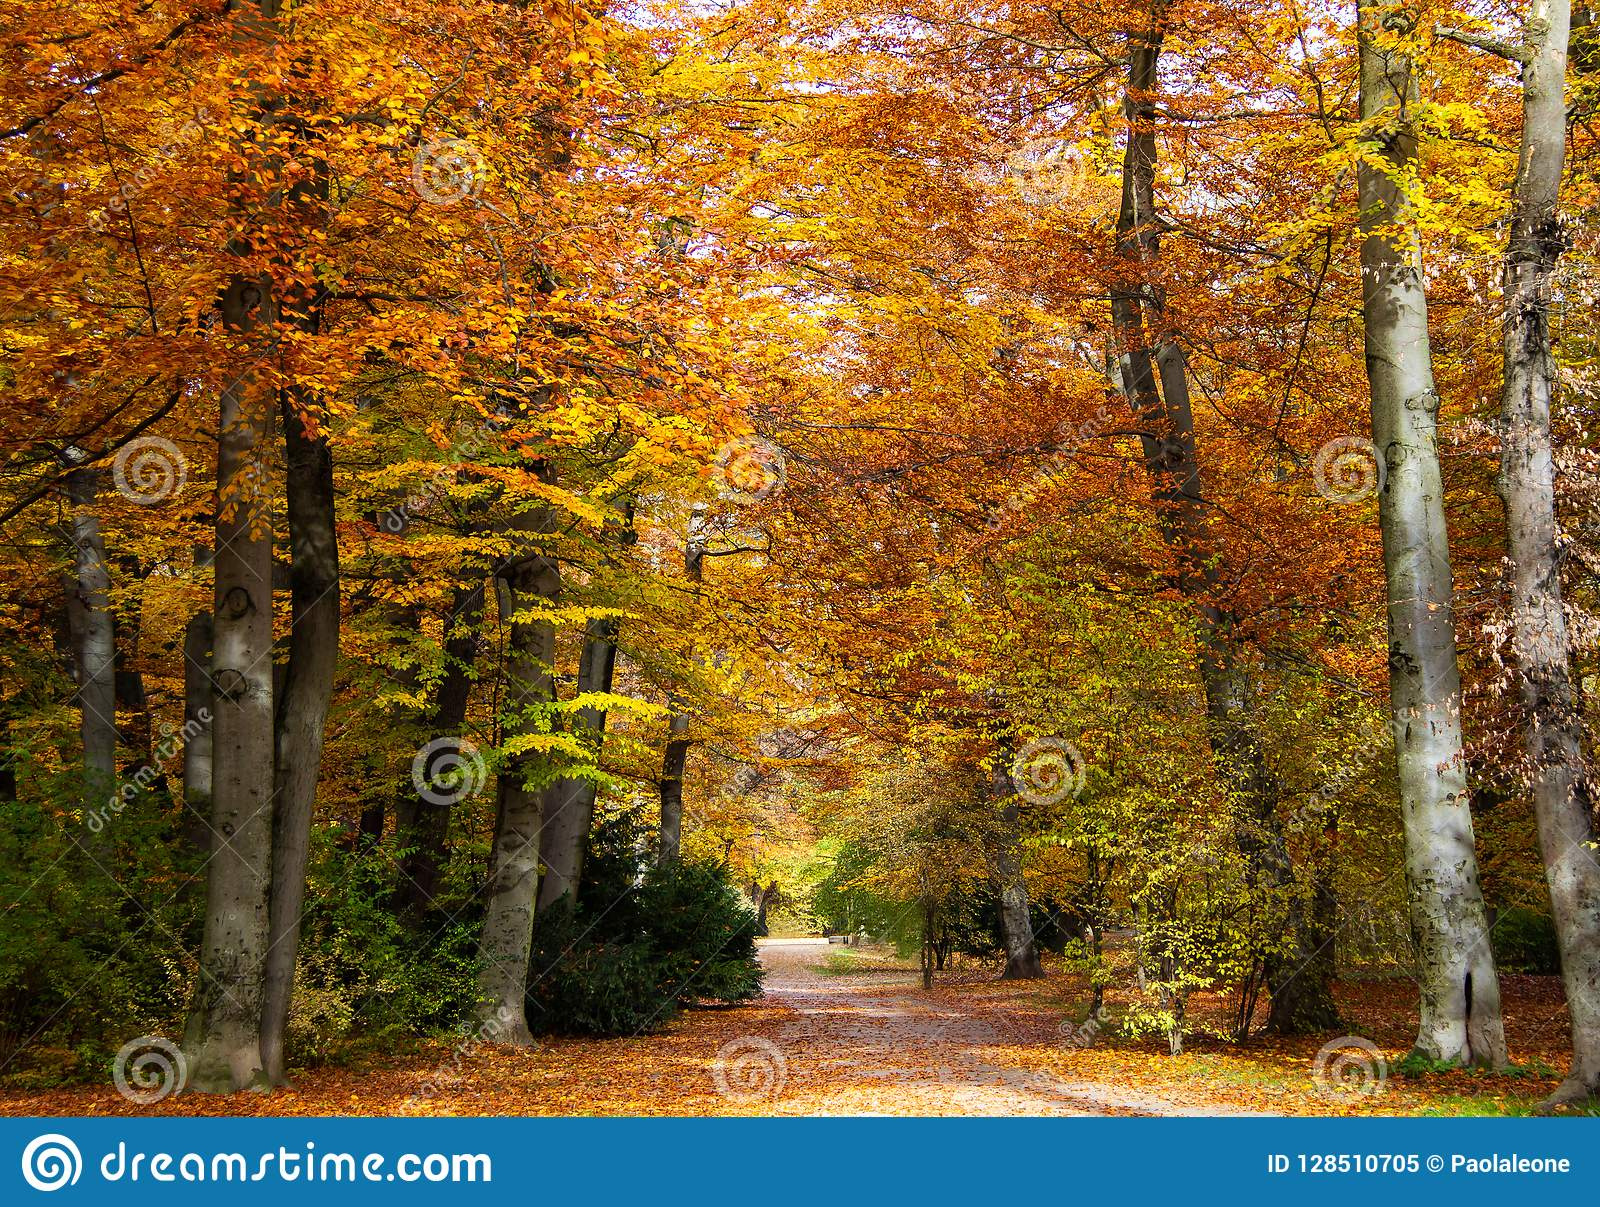 Autumn, Fall. Beautiful Gold colored Foliage Trees in a Park, with little road